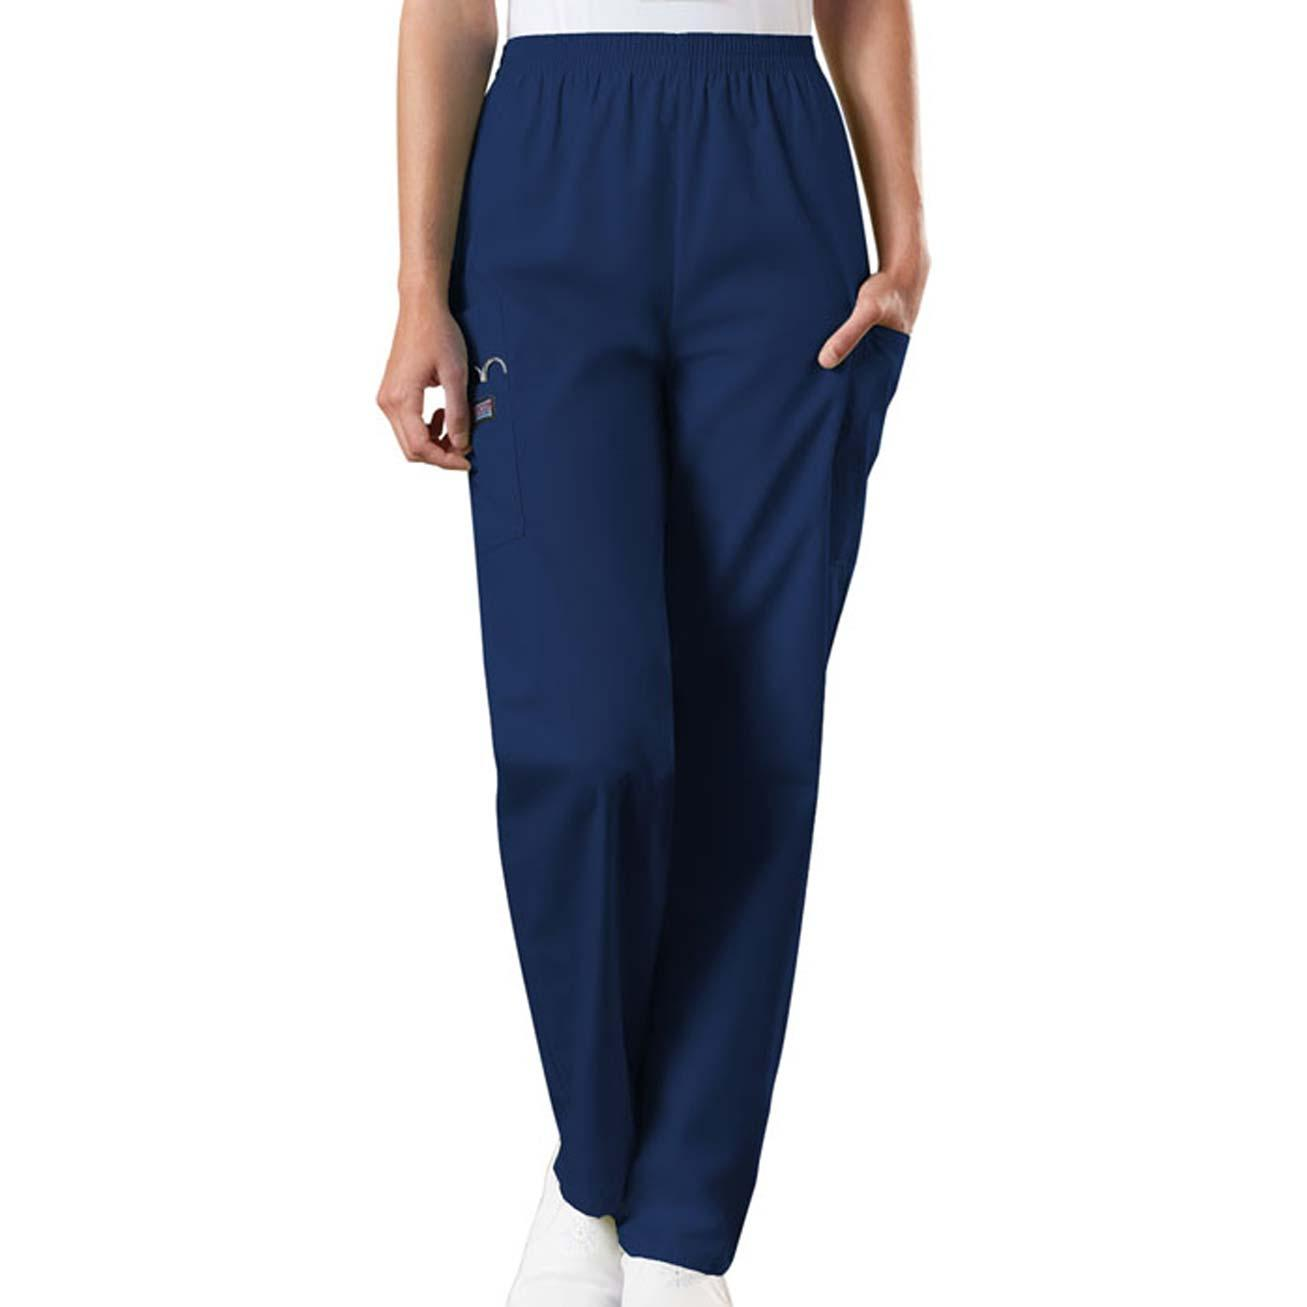 Model Caslon Navy Blue Dress Pants Slacks Womens Size 6  EBay